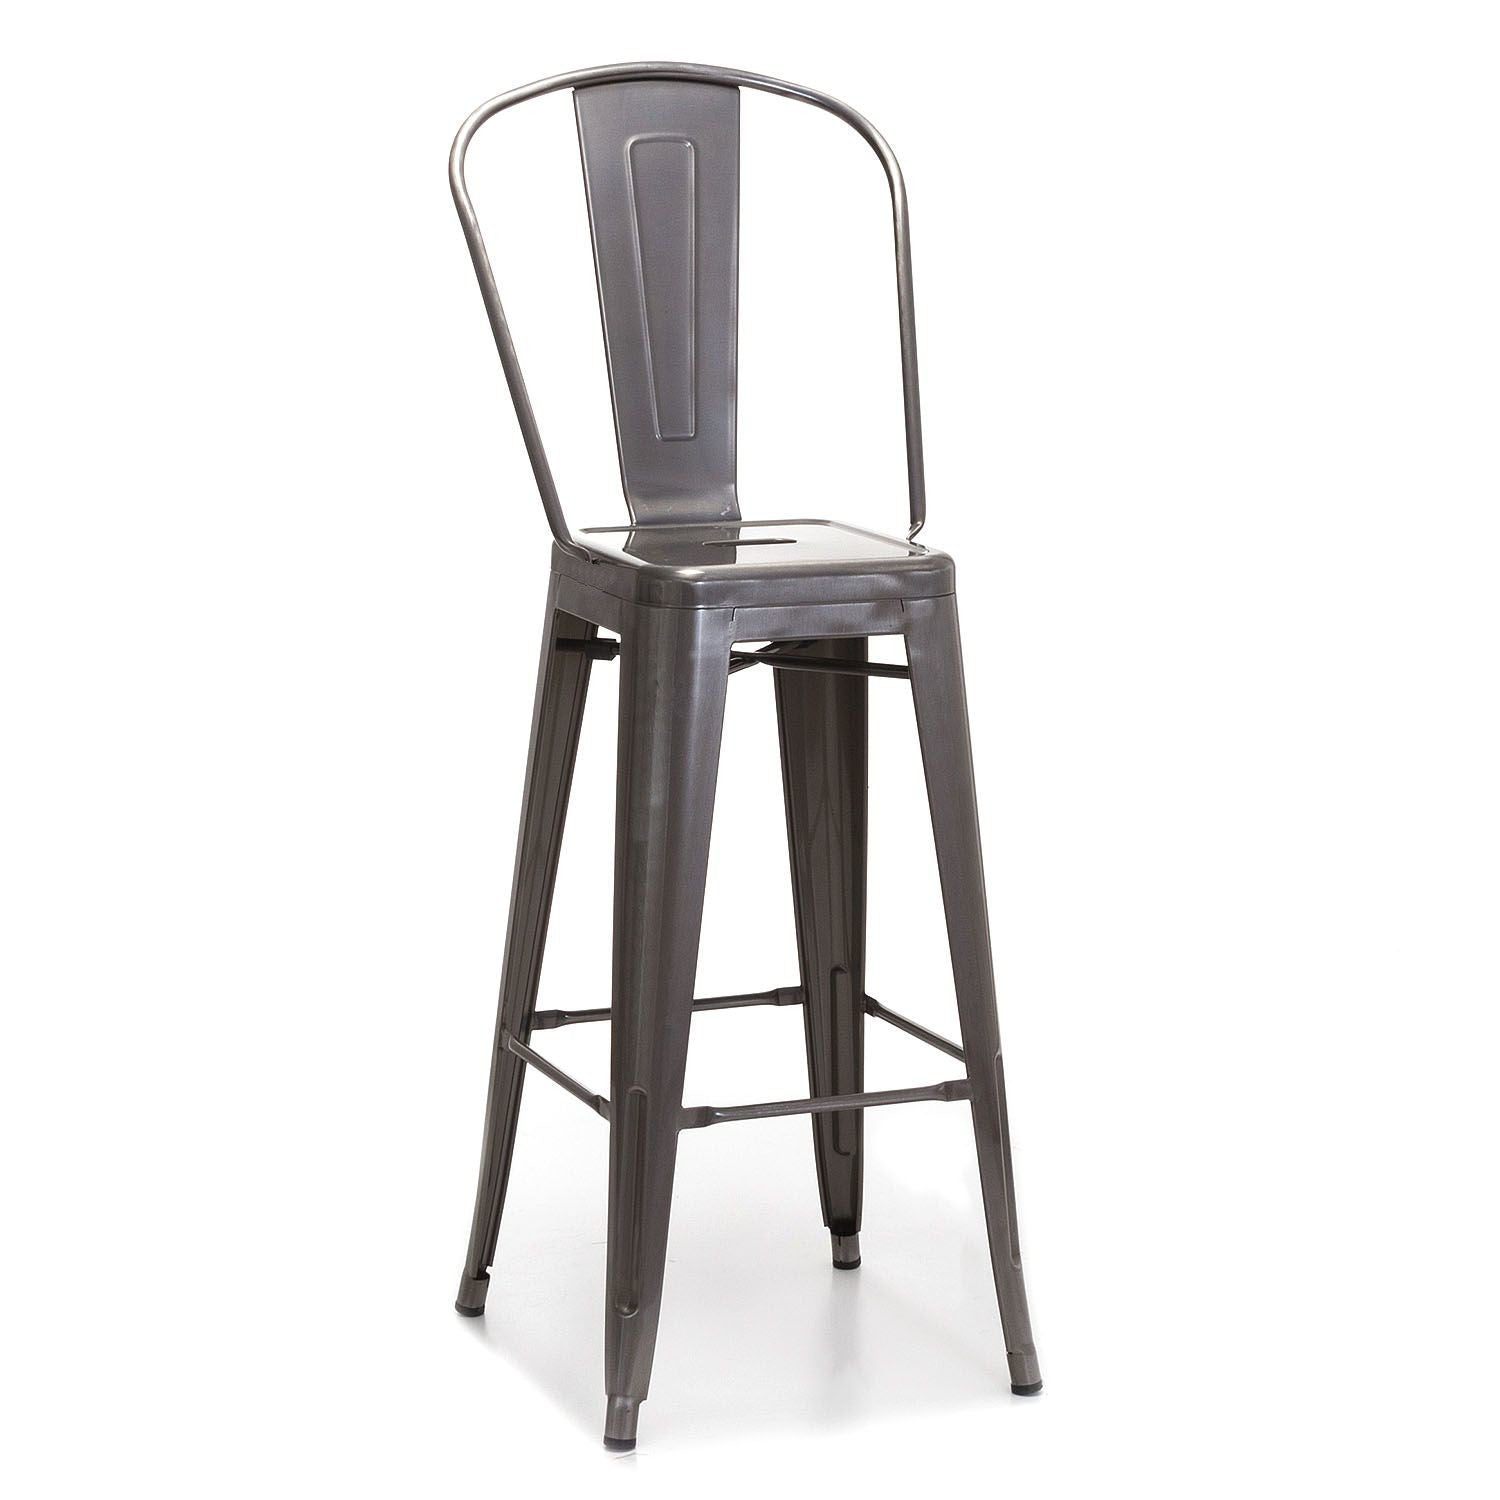 Snug industrial tolix style galvanised metal dining or kitchen bar stools tall chairs with backs